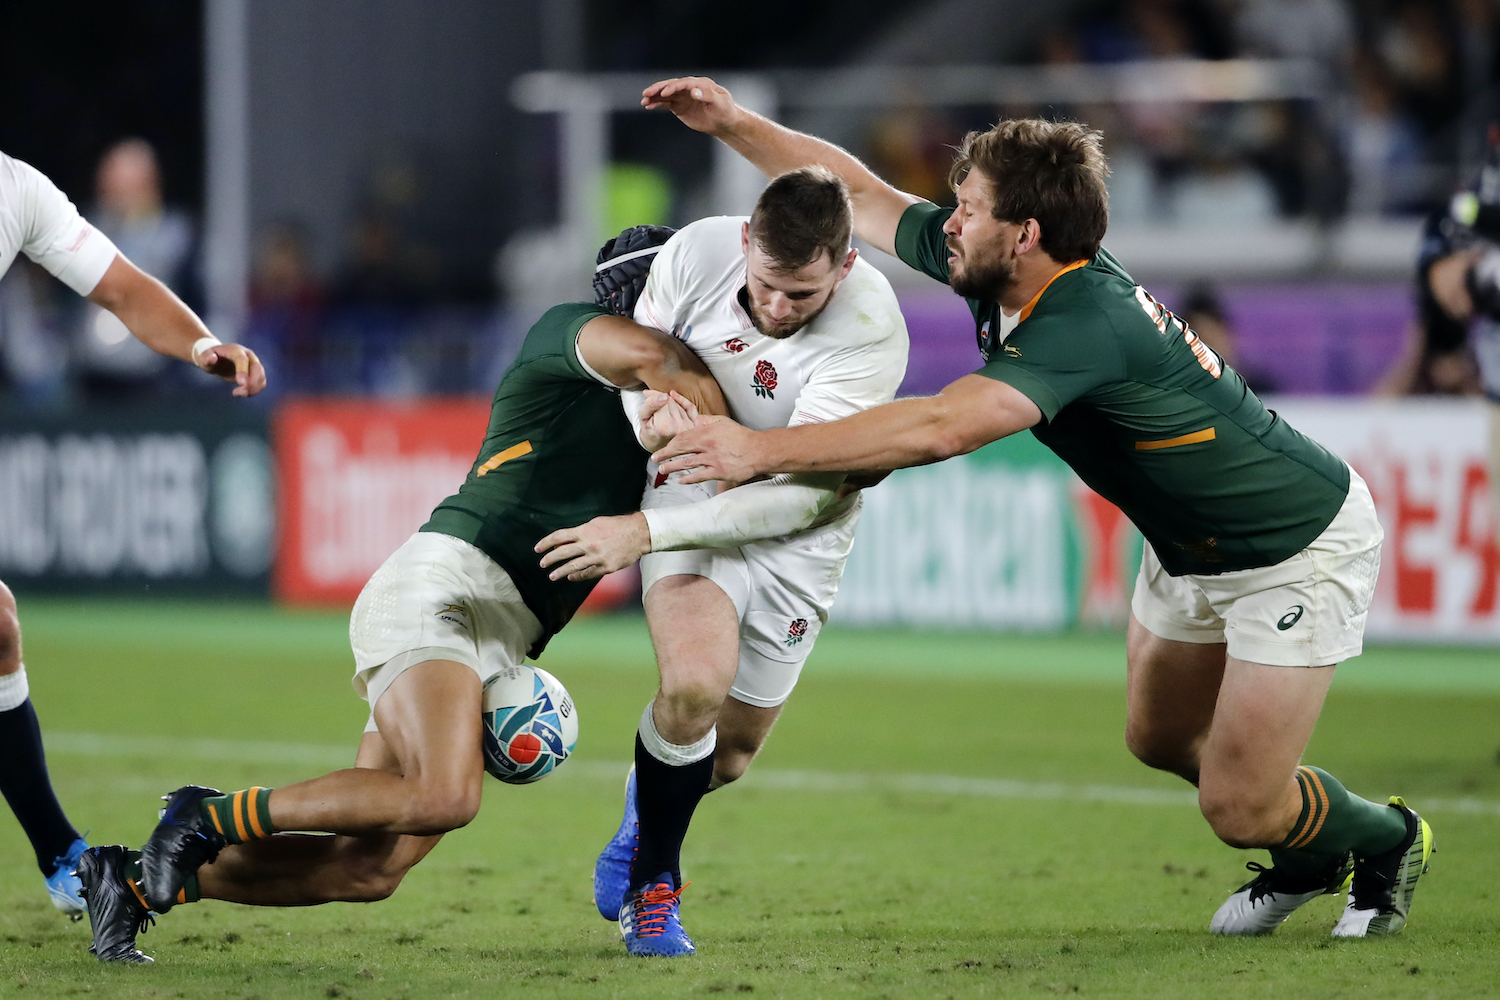 Owen Farrell England's Elliot Daly loses the ball as he is tackled by South Africa's Cheslin Kolbe (left) and Frans Steyn during the Rugby World Cup final in Yokohama on Saturday. (AP Photo)